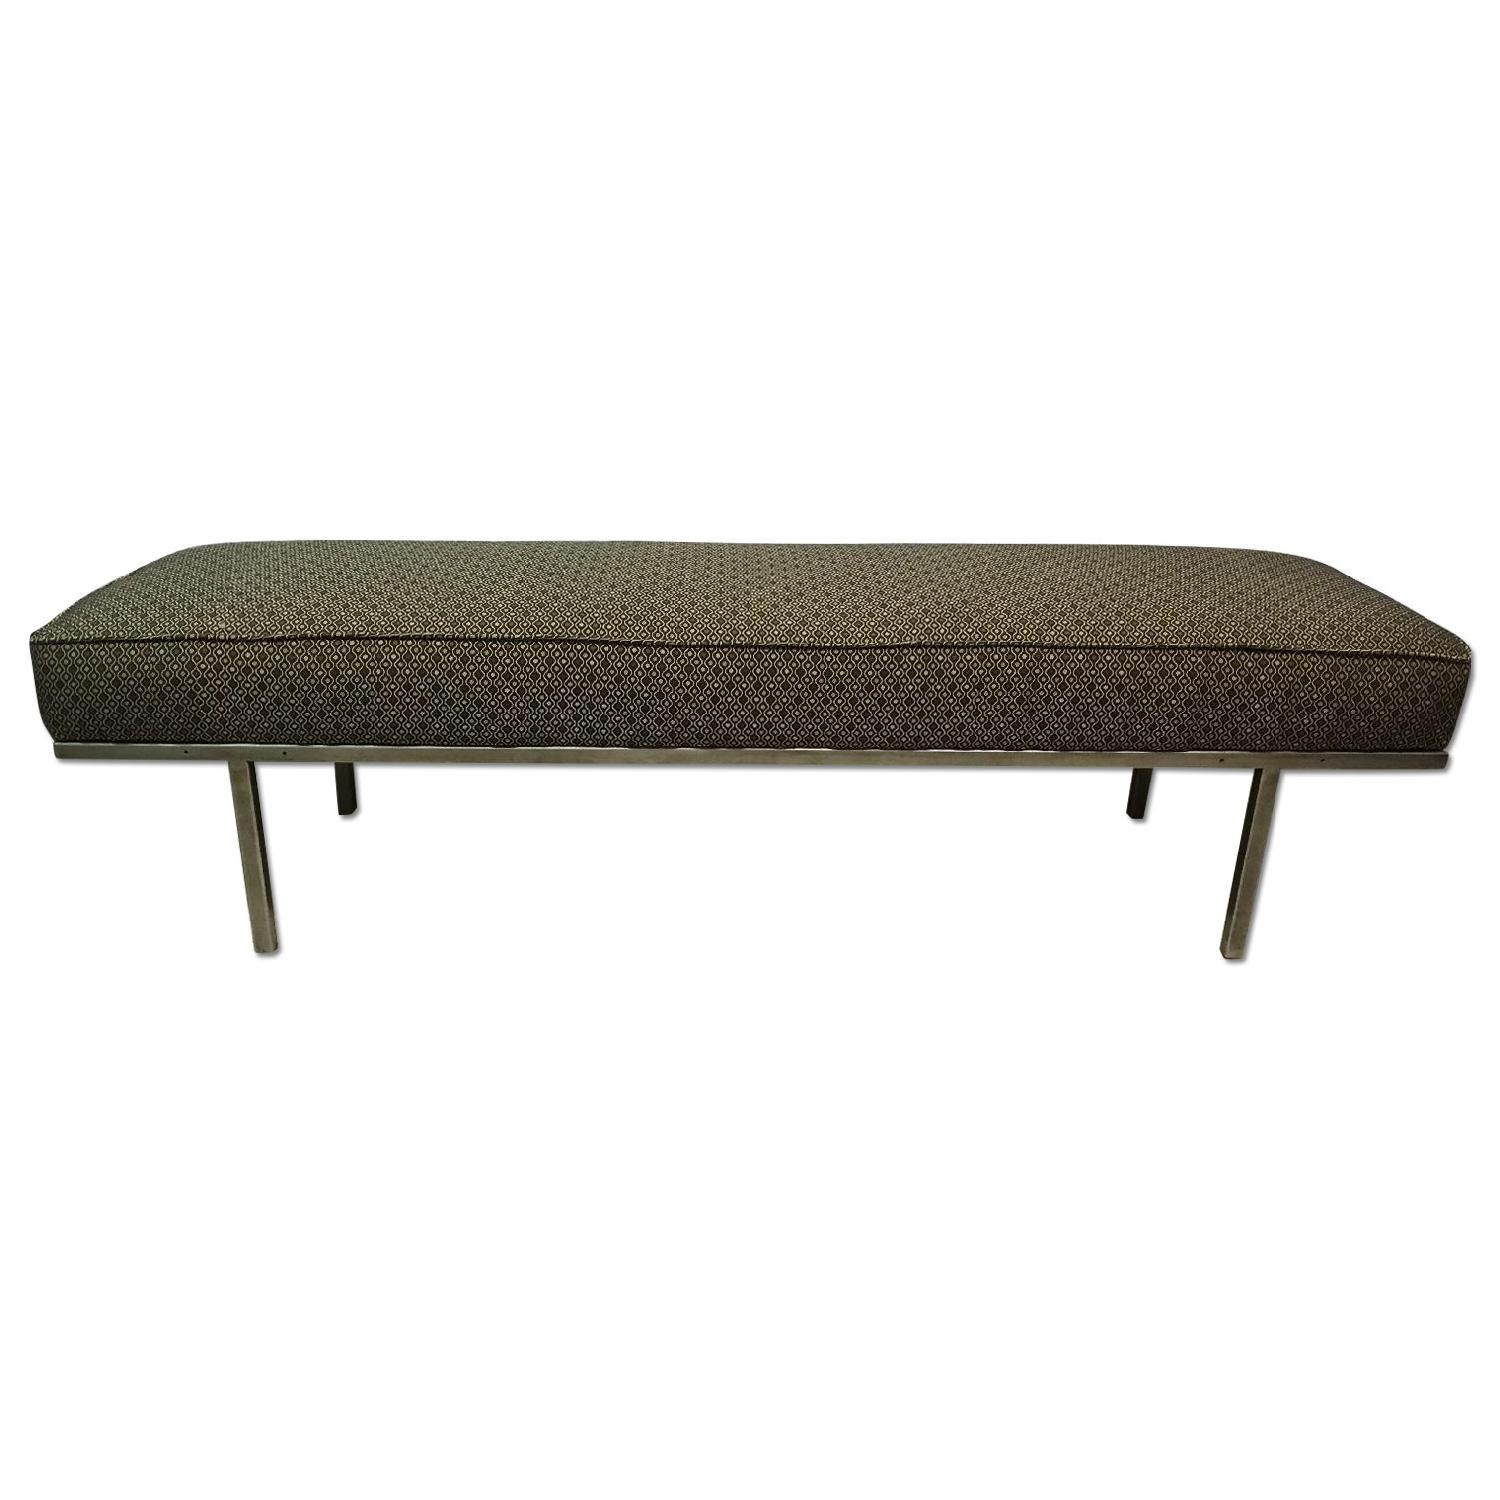 Knoll Style Mid Century Modern Chrome Bench - image-0